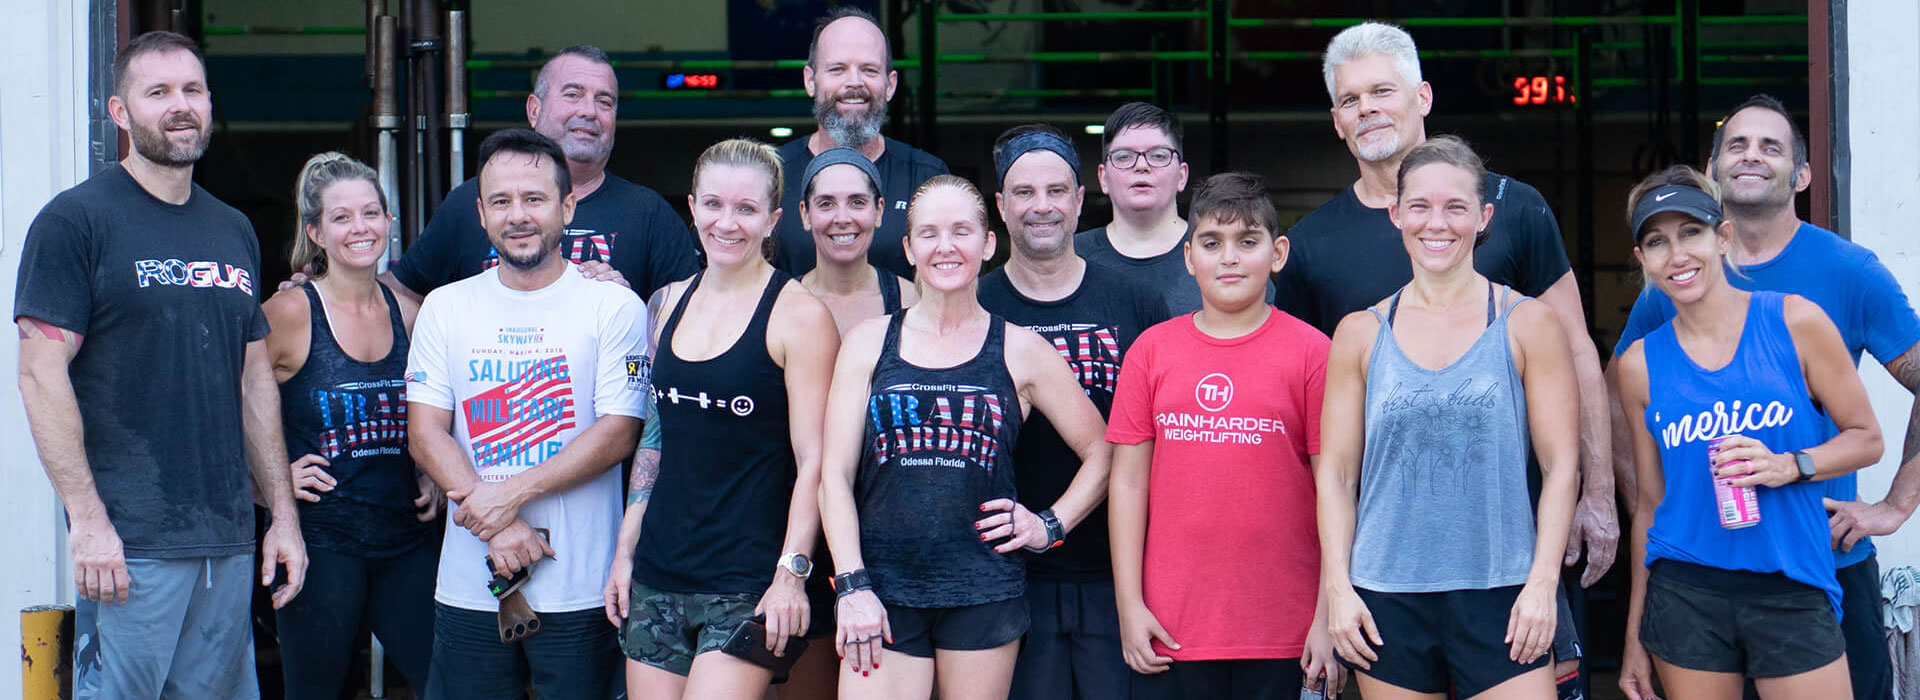 Why Train Harder CrossFit Is Ranked One Of The Best Gyms In Odessa FL, Why Train Harder CrossFit Is Ranked One Of The Best Gyms near Odessa FL, Why Train Harder CrossFit Is Ranked One Of The Best Gyms near Tampa FL